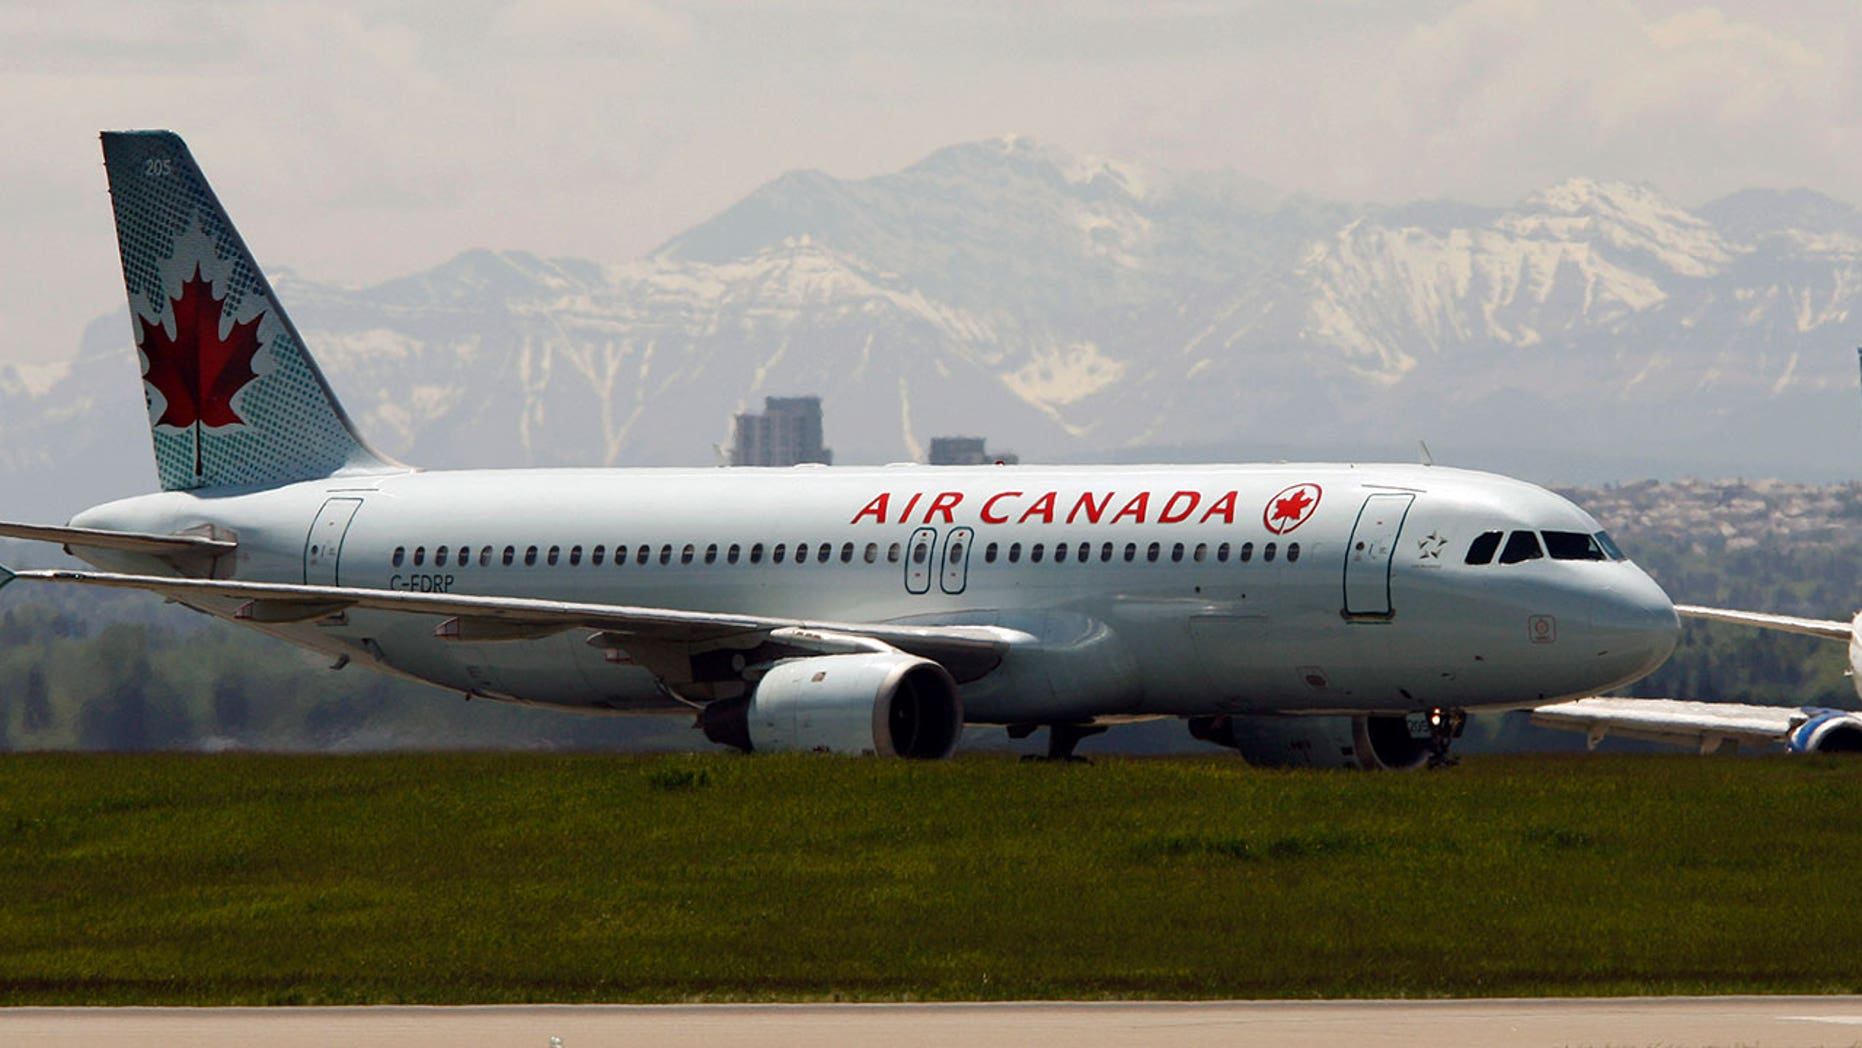 An Air Canada flight almost landed on a crowded taxiway filled with passenger planes.